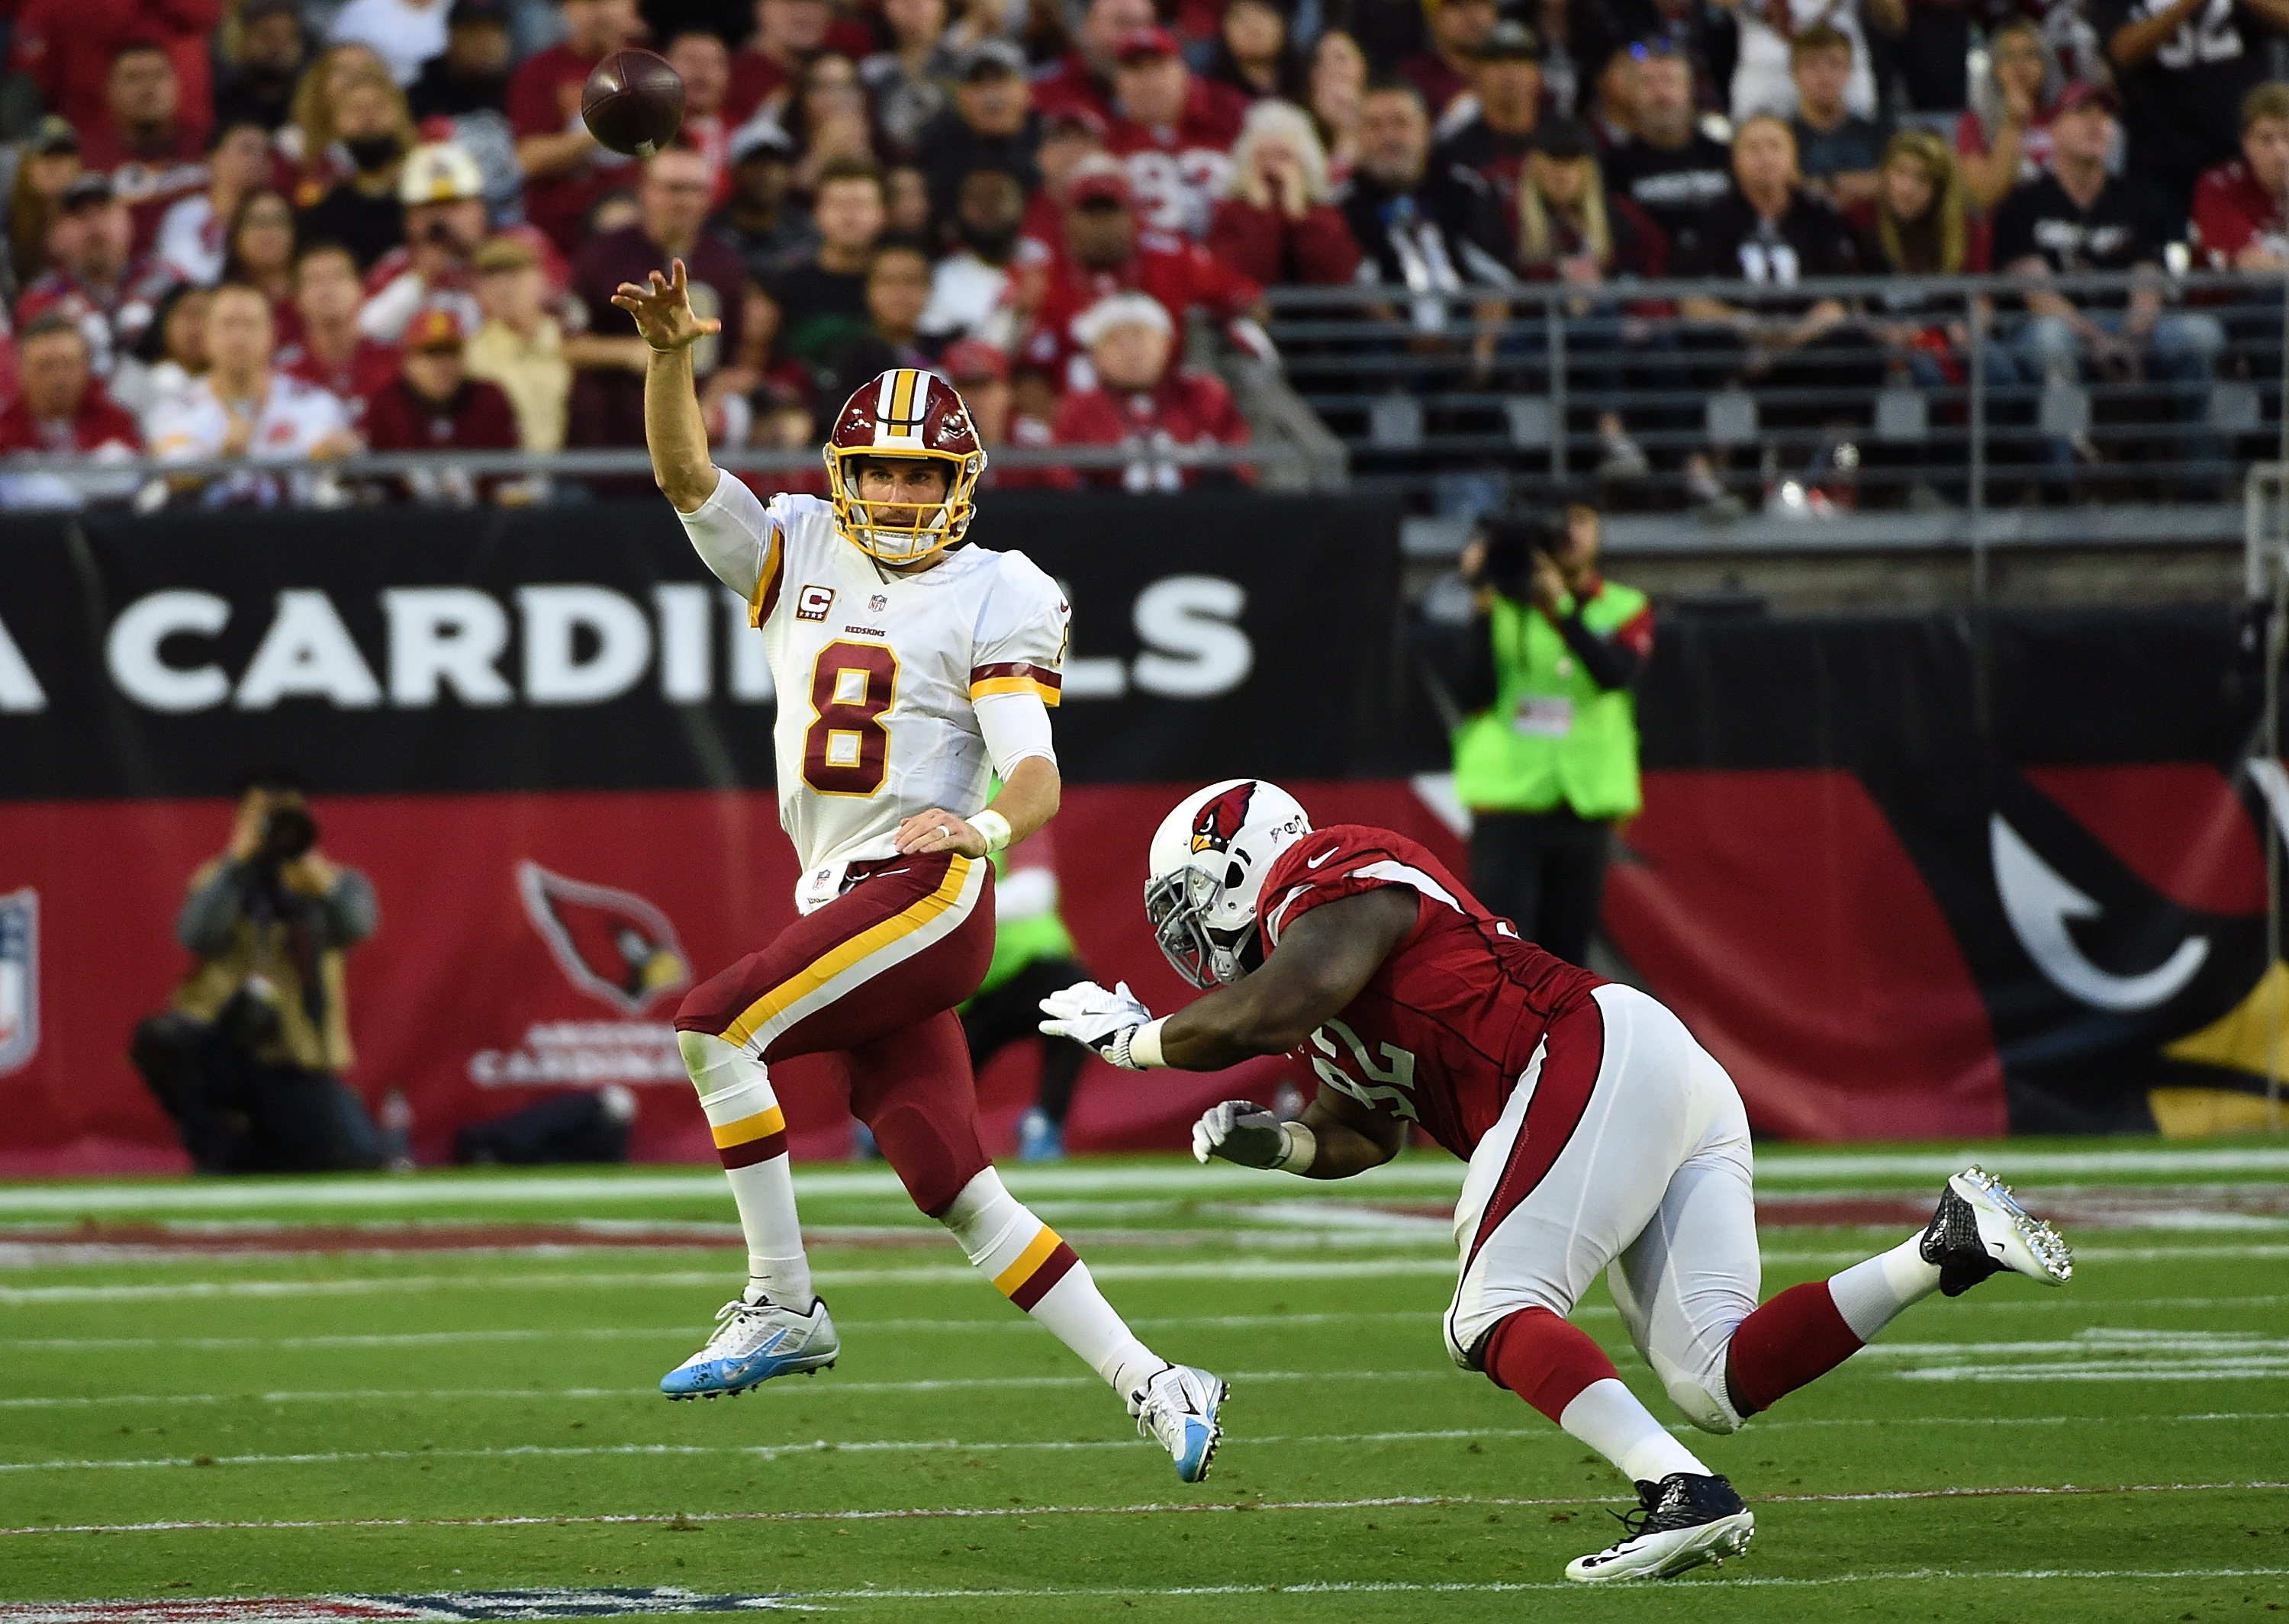 Five takeaways from the Redskins' narrow win over the Cardinals